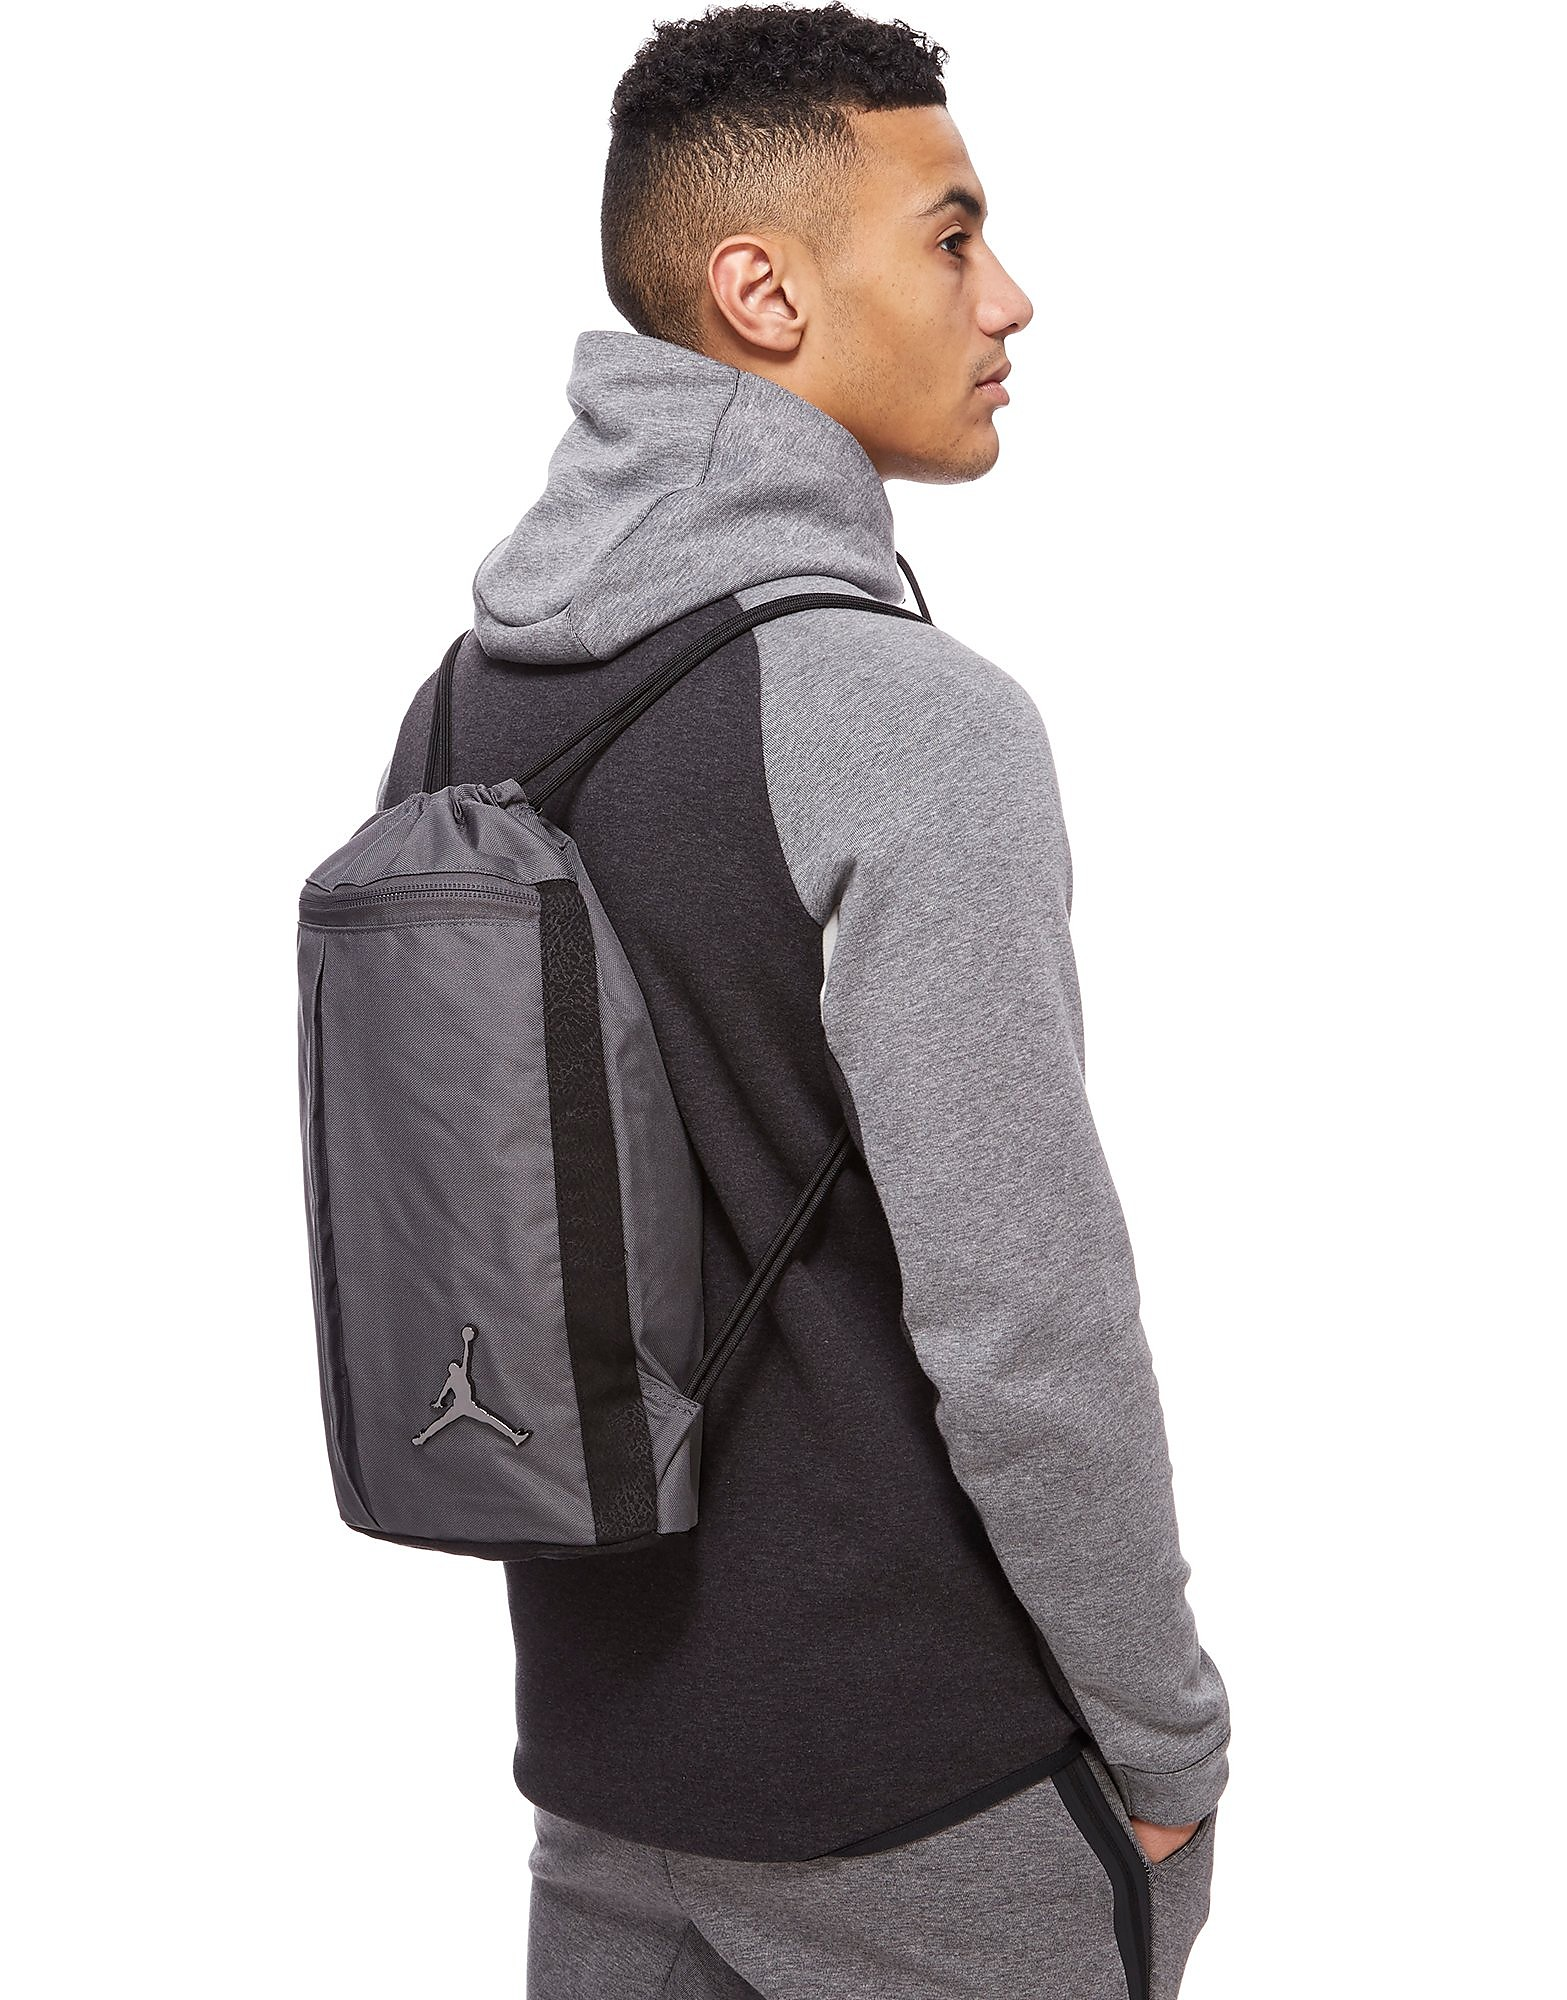 Nike Jordan Unconscious Backpack